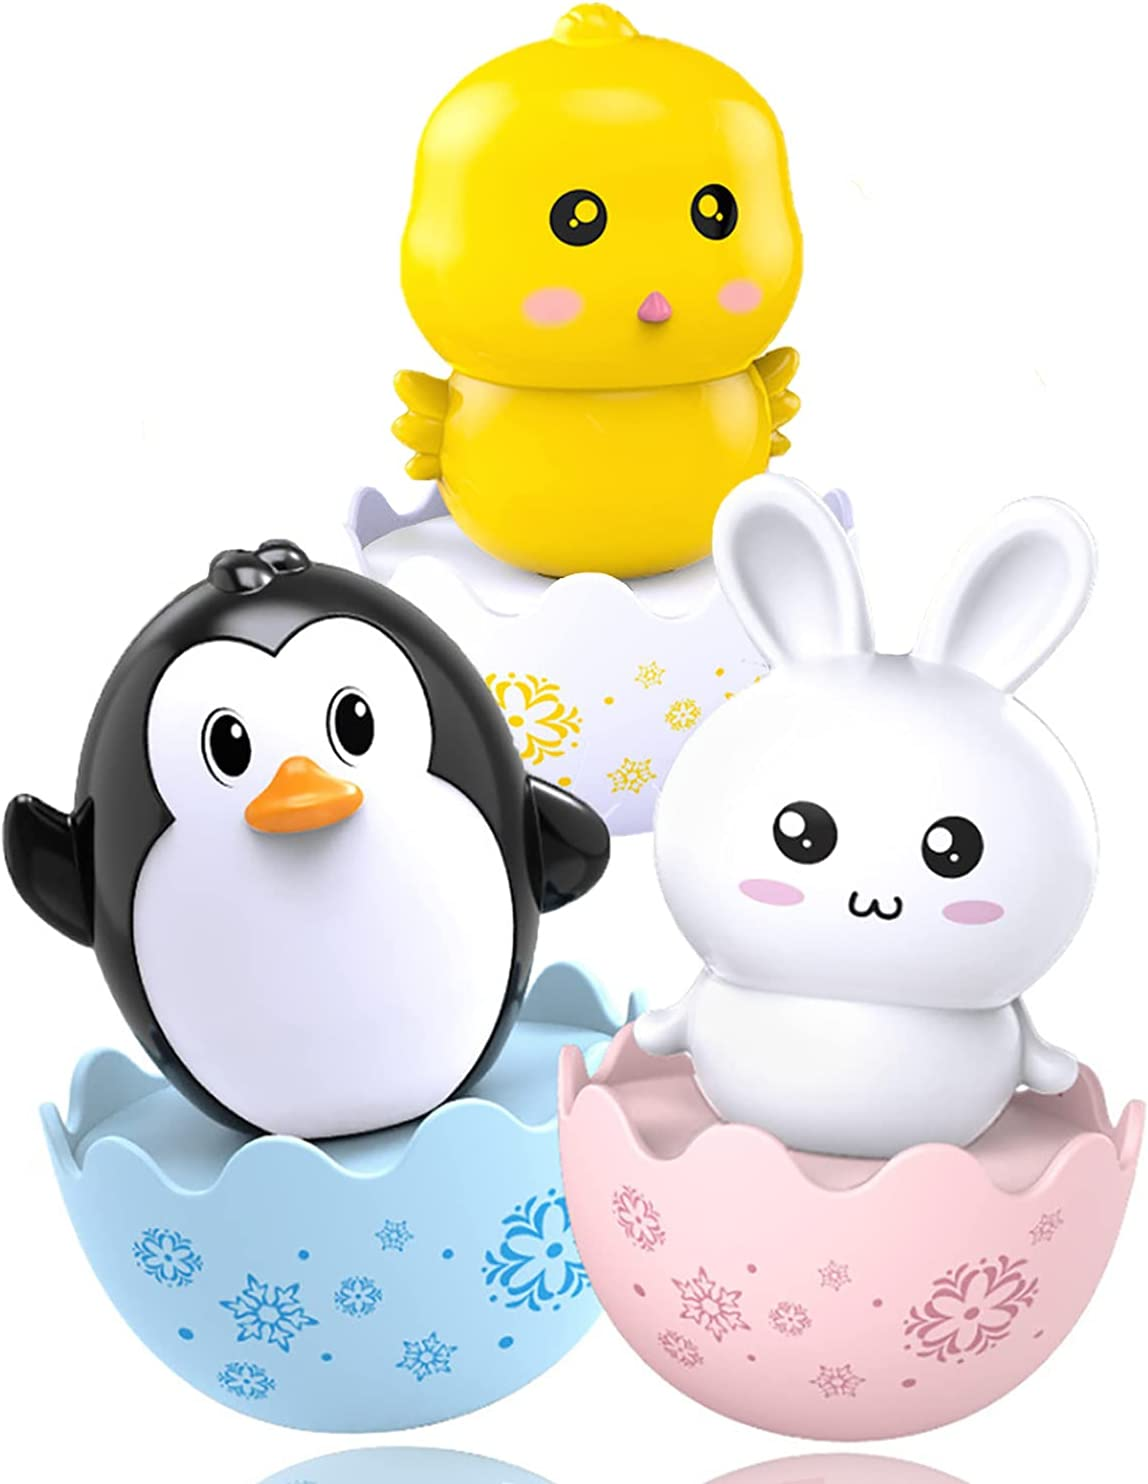 Lukax 3PCS Roly Poly Baby Toys, Musical Wobbler Tumbler Toy 6 to 12 Months Developmental, Penguin Bunny Chick Tummy Time Wobbler Toys for Kid Boy Girl Gifts